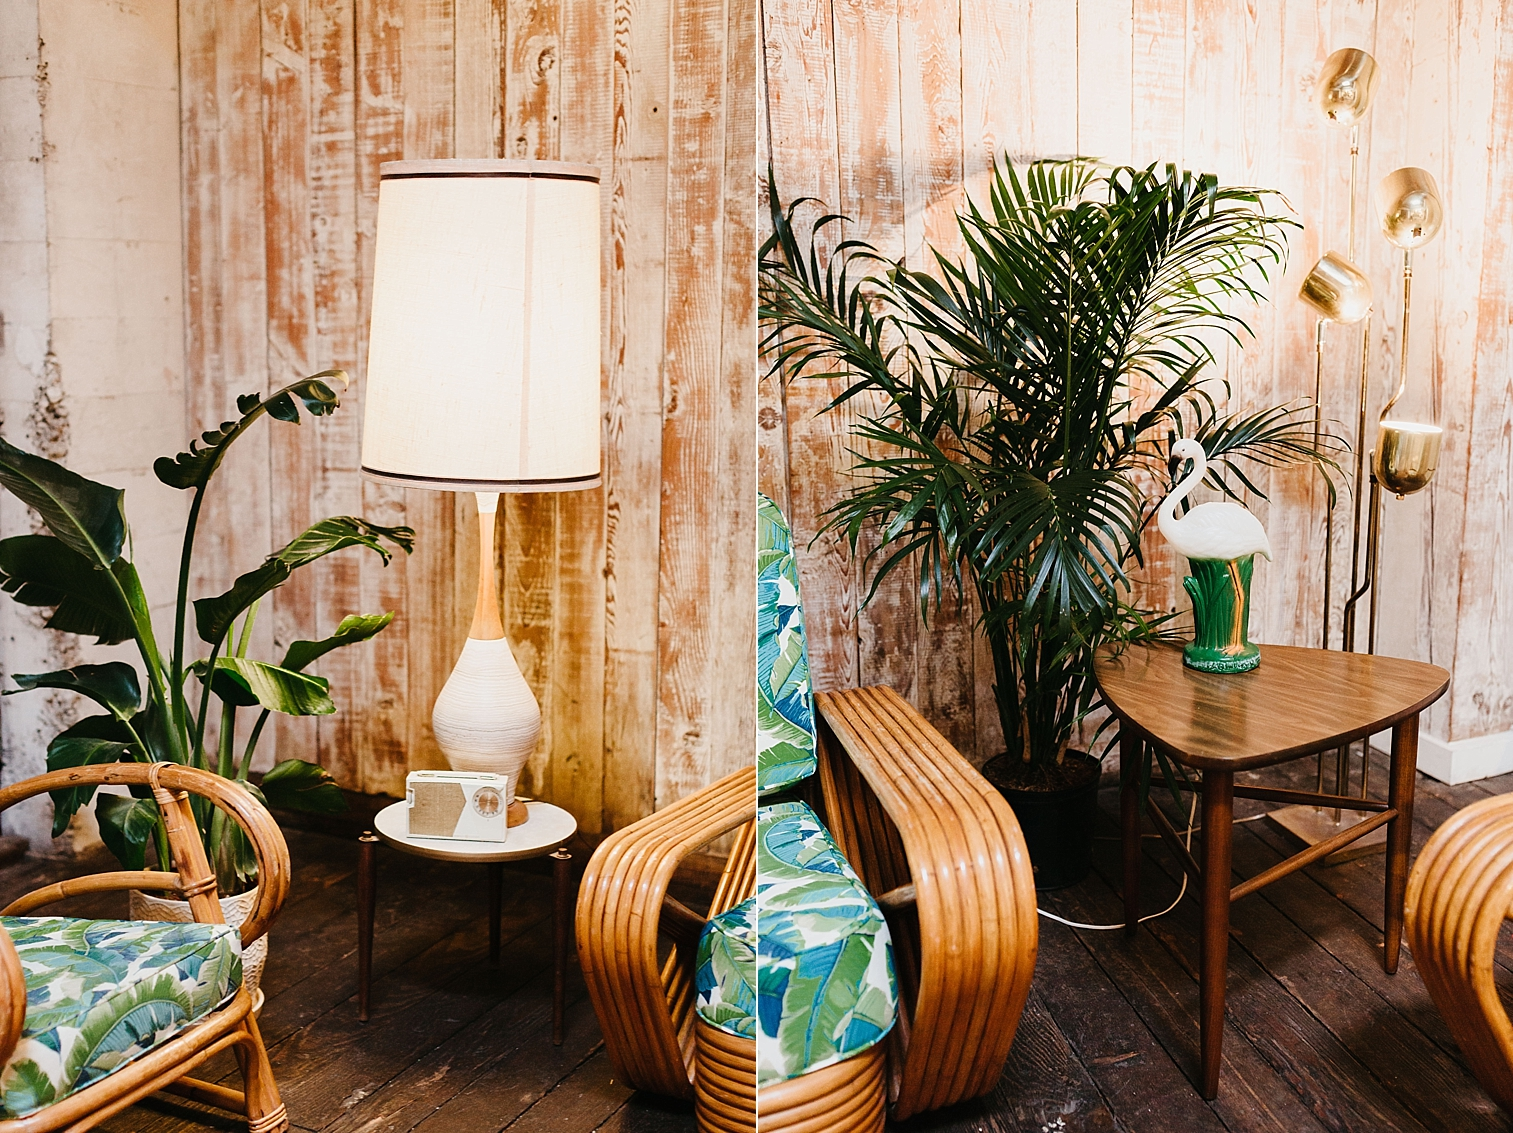 Tropical-Vintage-Within-Sodo-Wedding-54.jpg